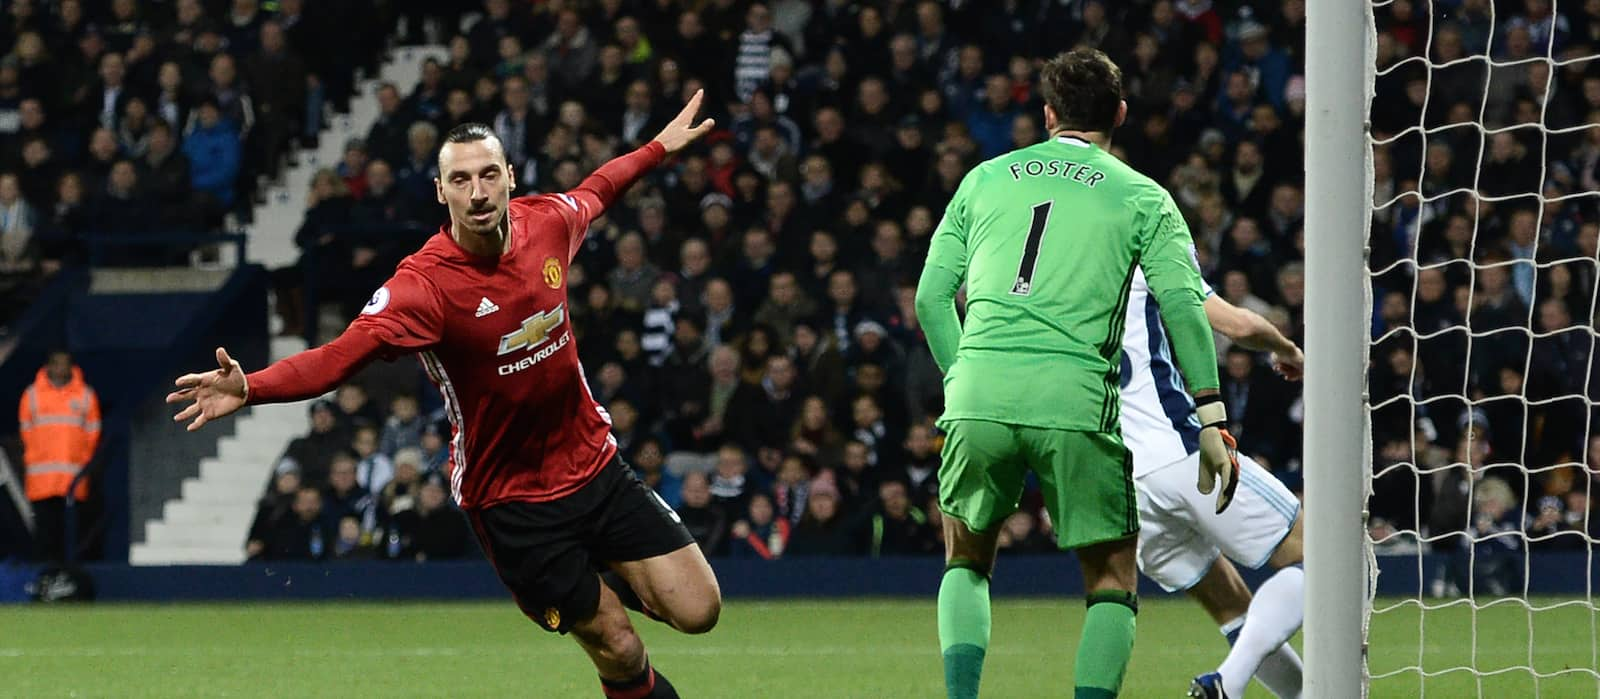 Ibrahimovic to hold talks with Manchester United over possible